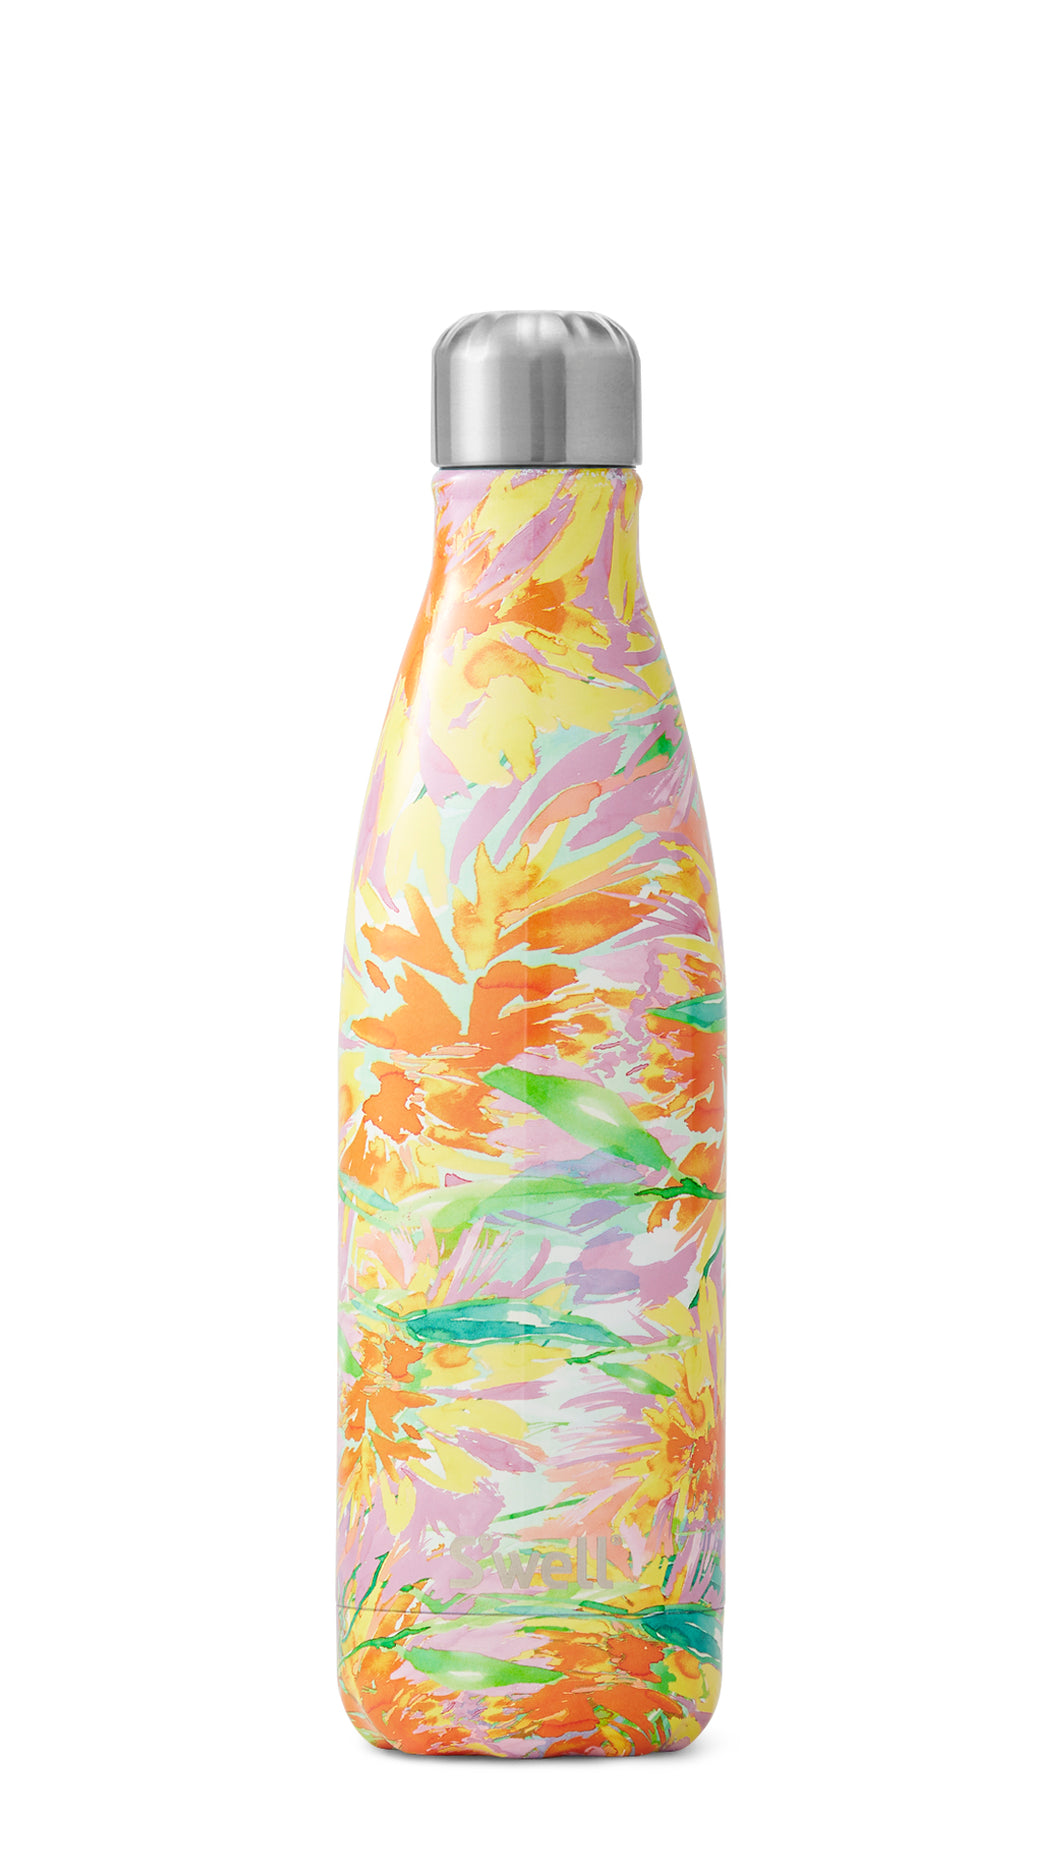 Swell Bottle 17 OZ Sunkissed